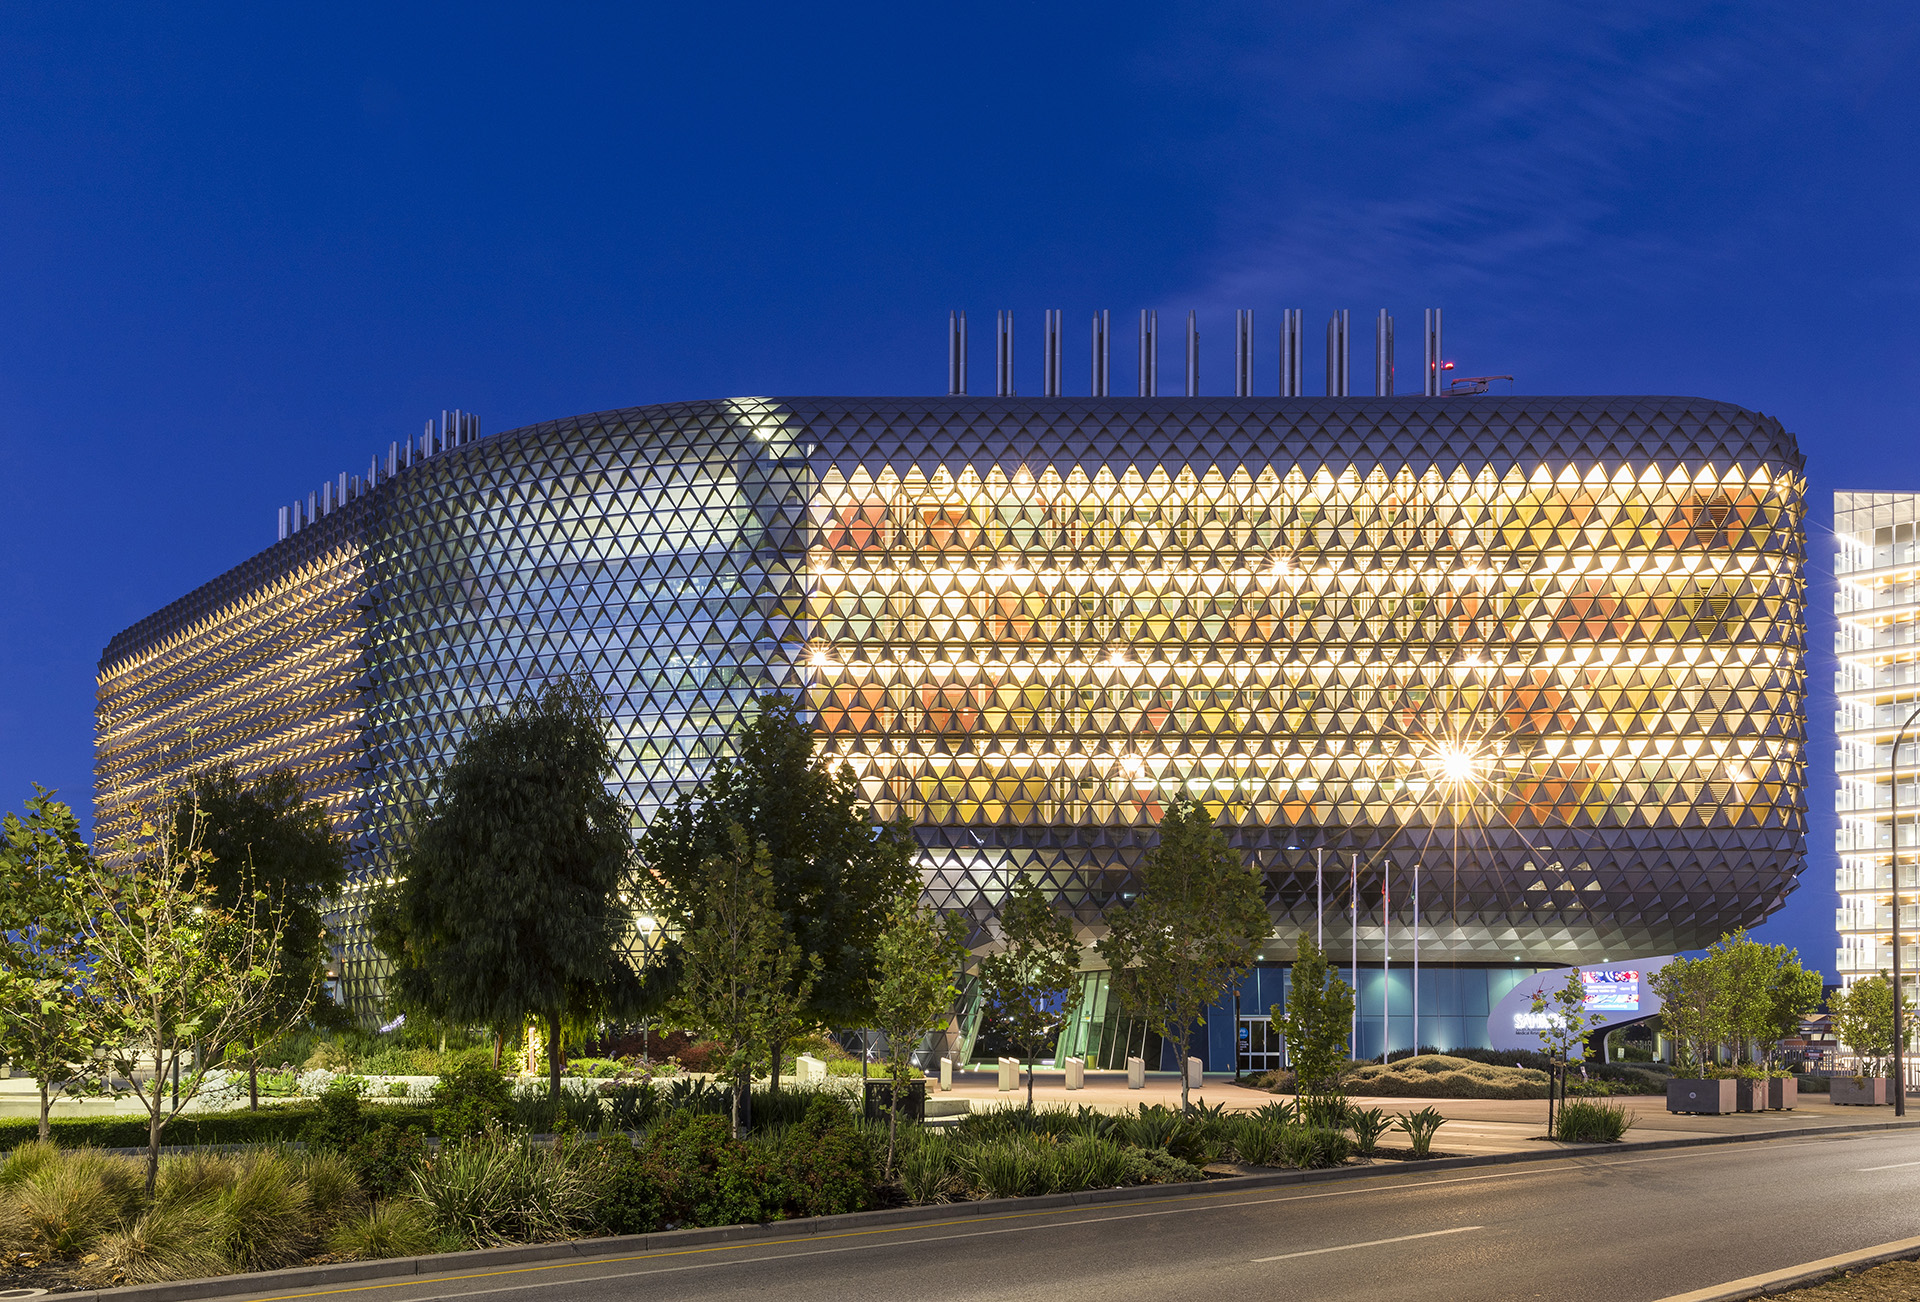 Sydney real estate photographer, architecture, travel, design, real estate, Adelaide, SAHMRI, Woods Bagot, medical research